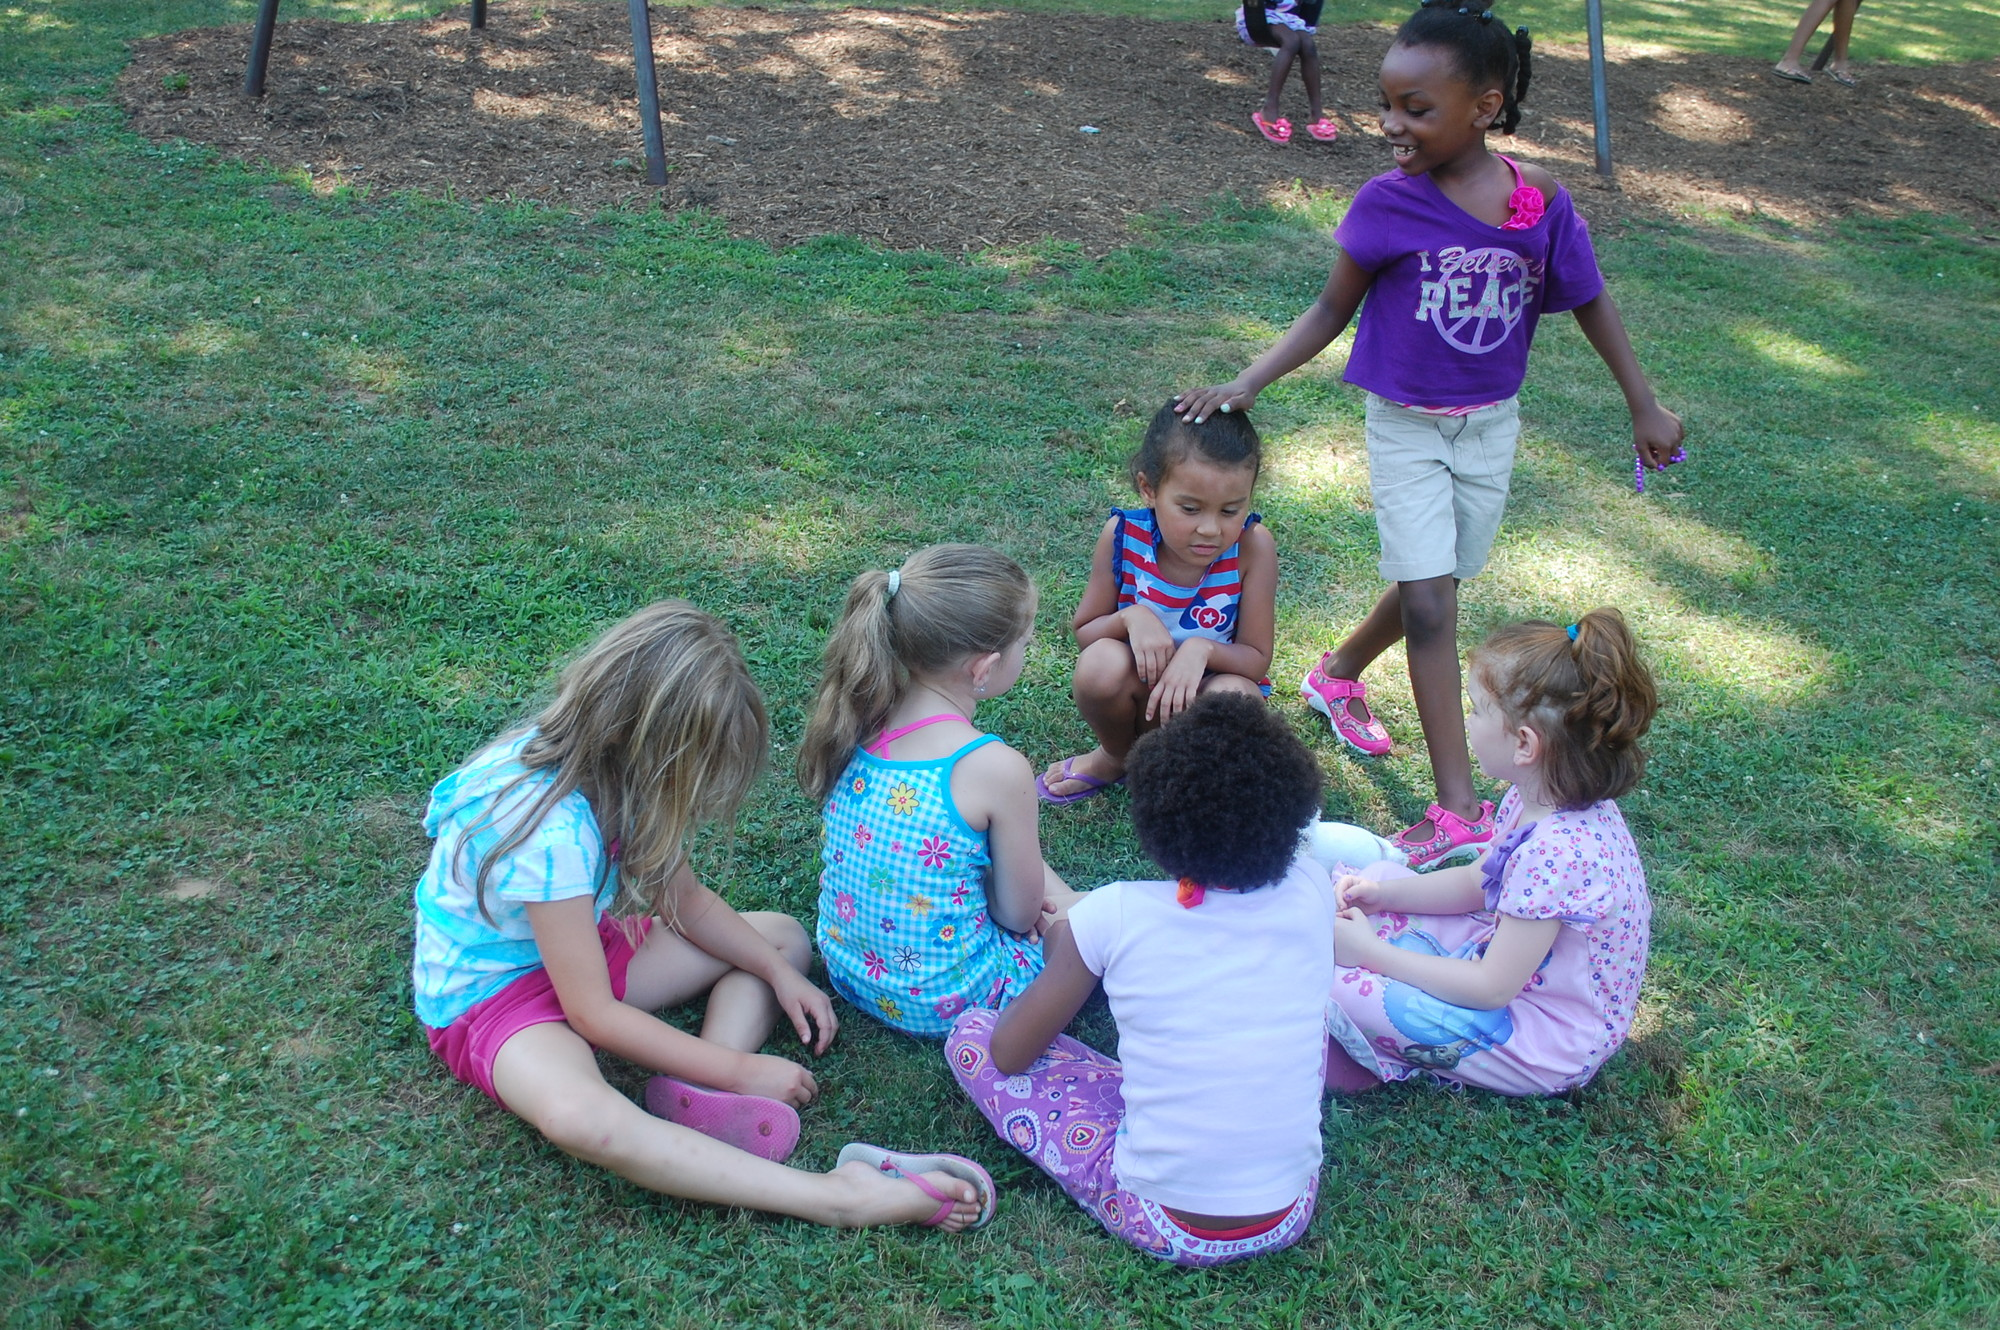 Children entertained themselves with a game of Duck, Duck, Goose.